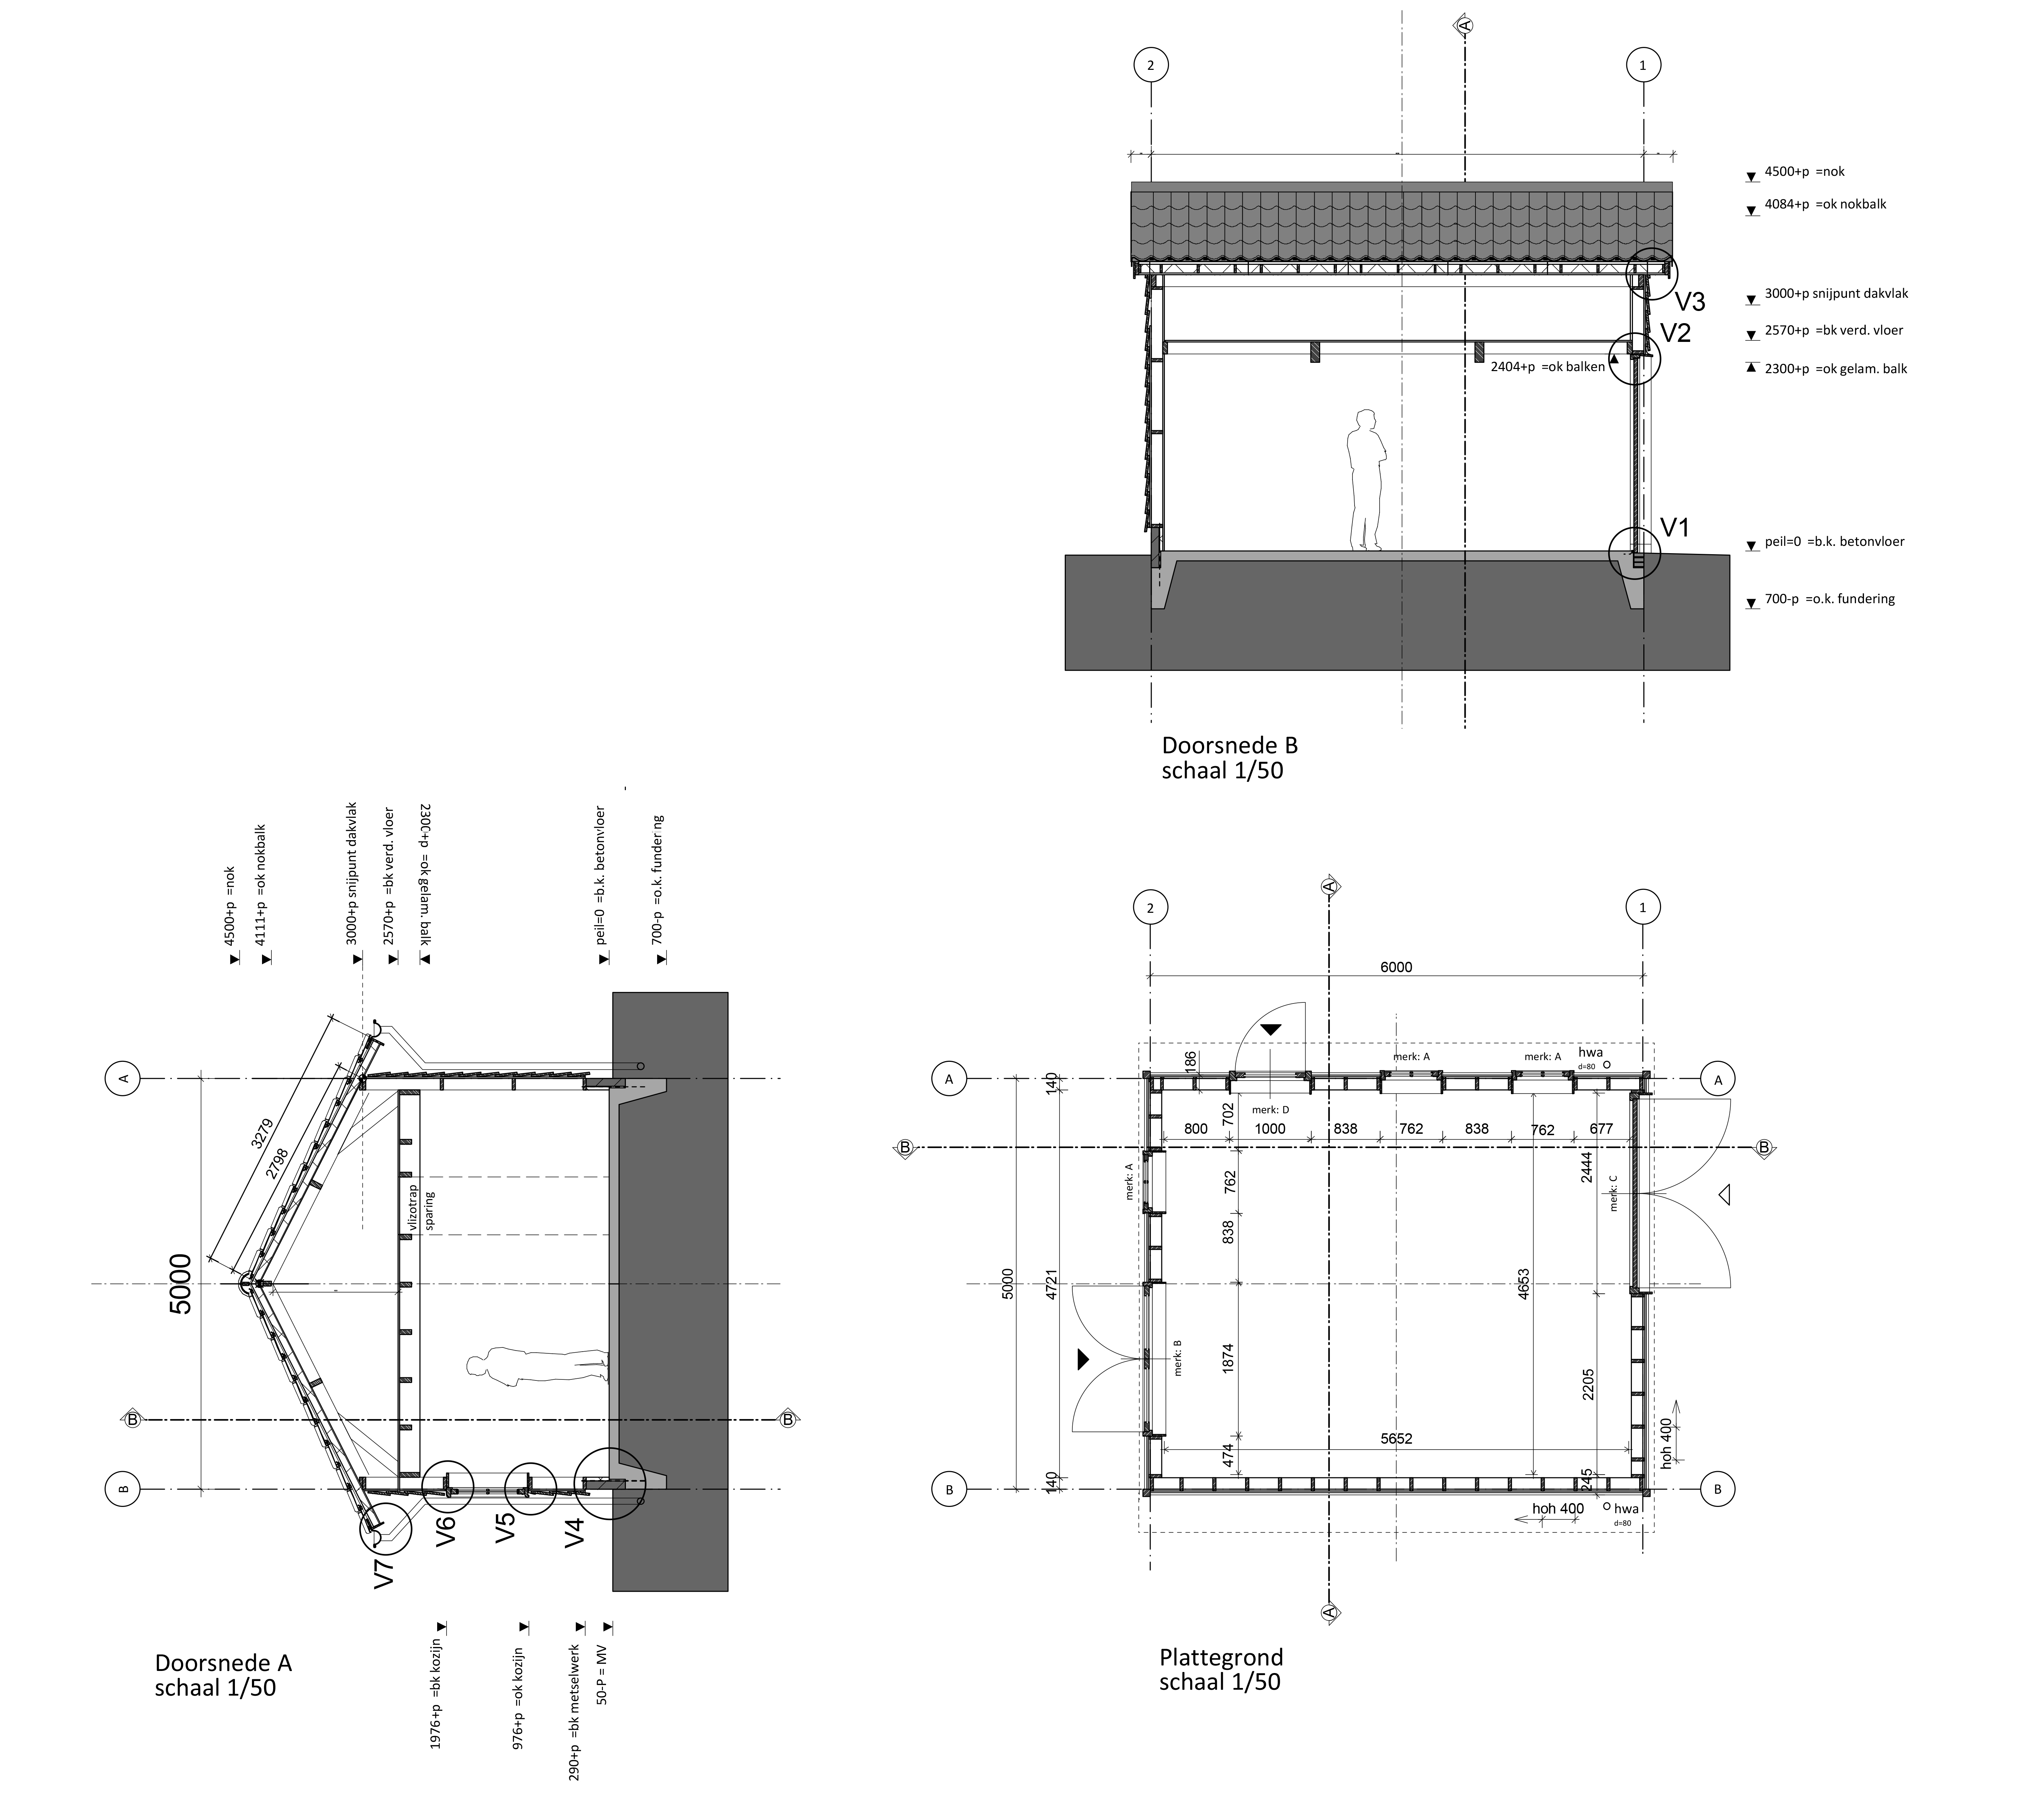 Floorplan and sections